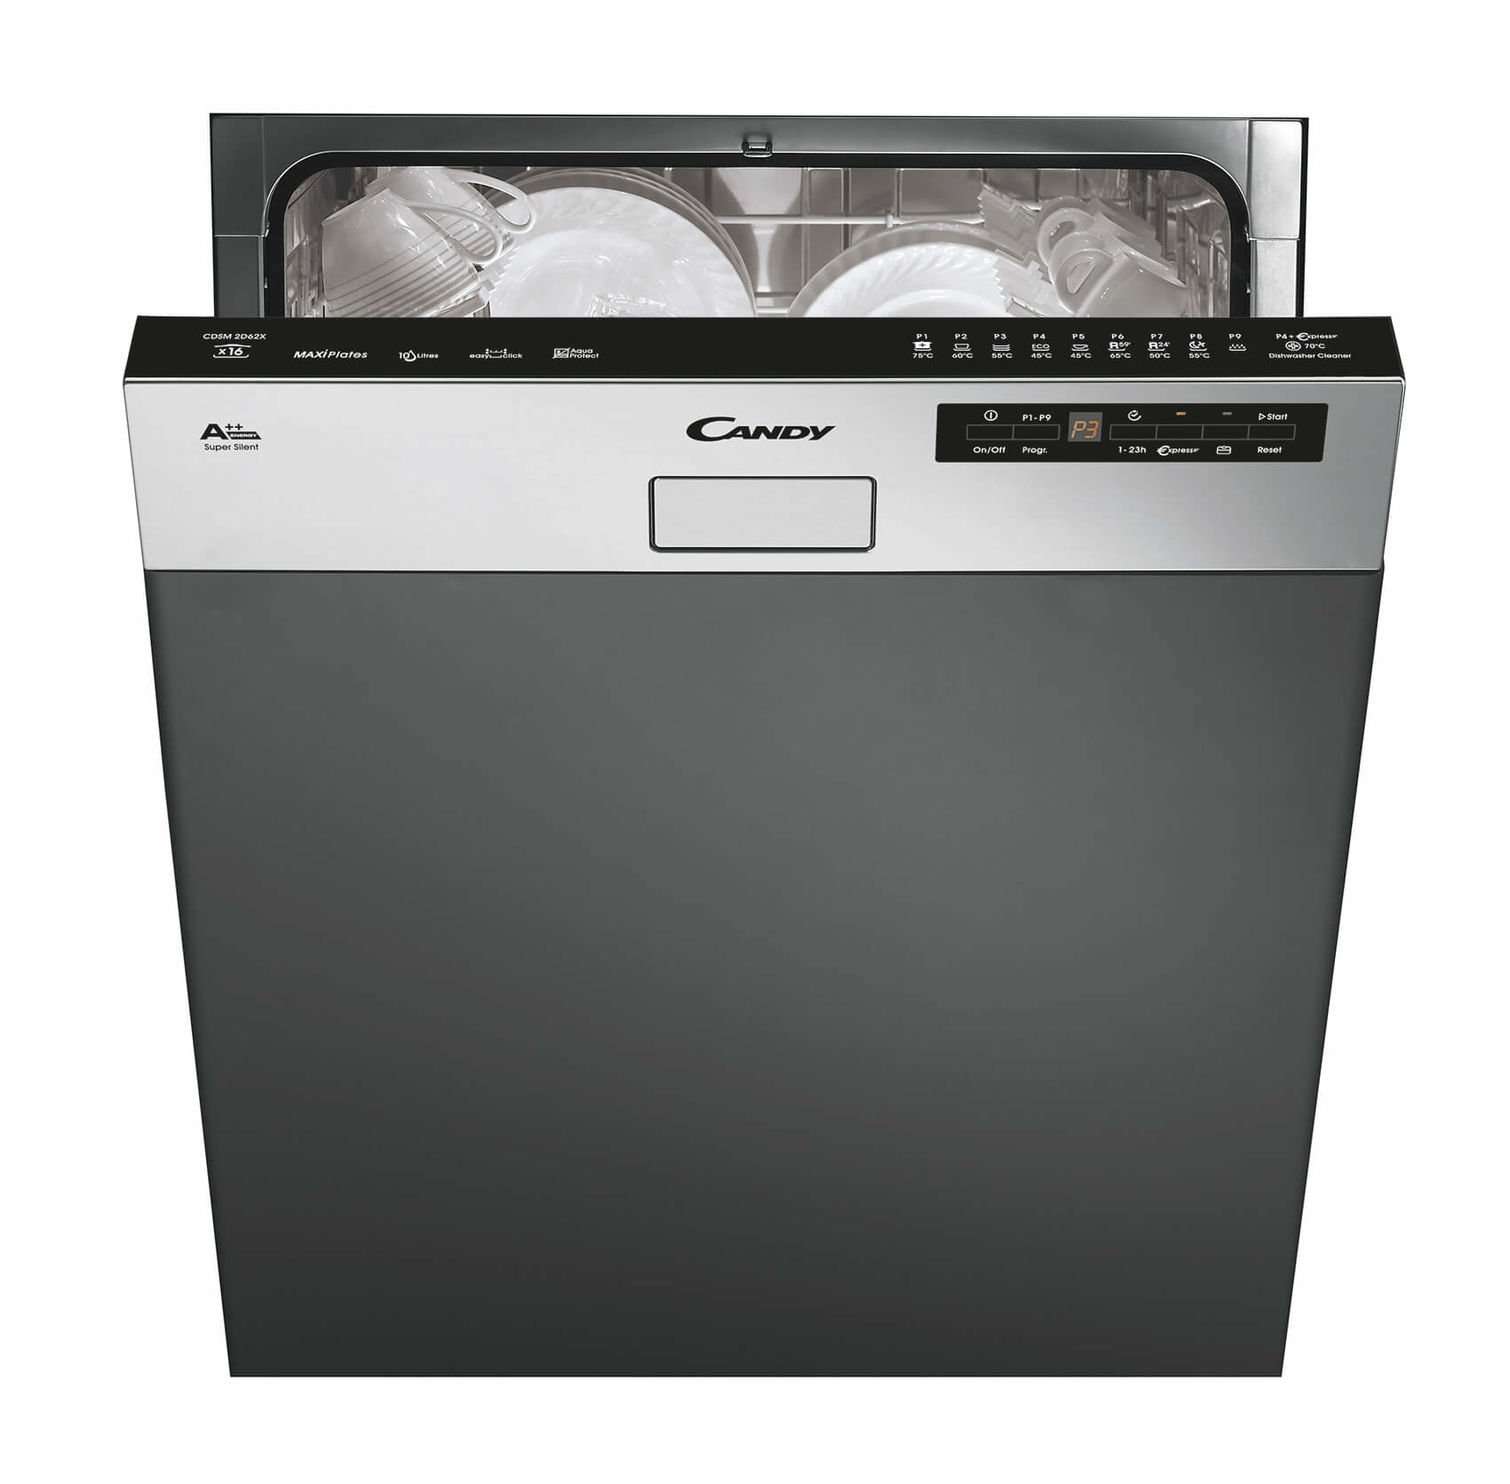 Candy Cdsm 2Ds62X Dishwasher